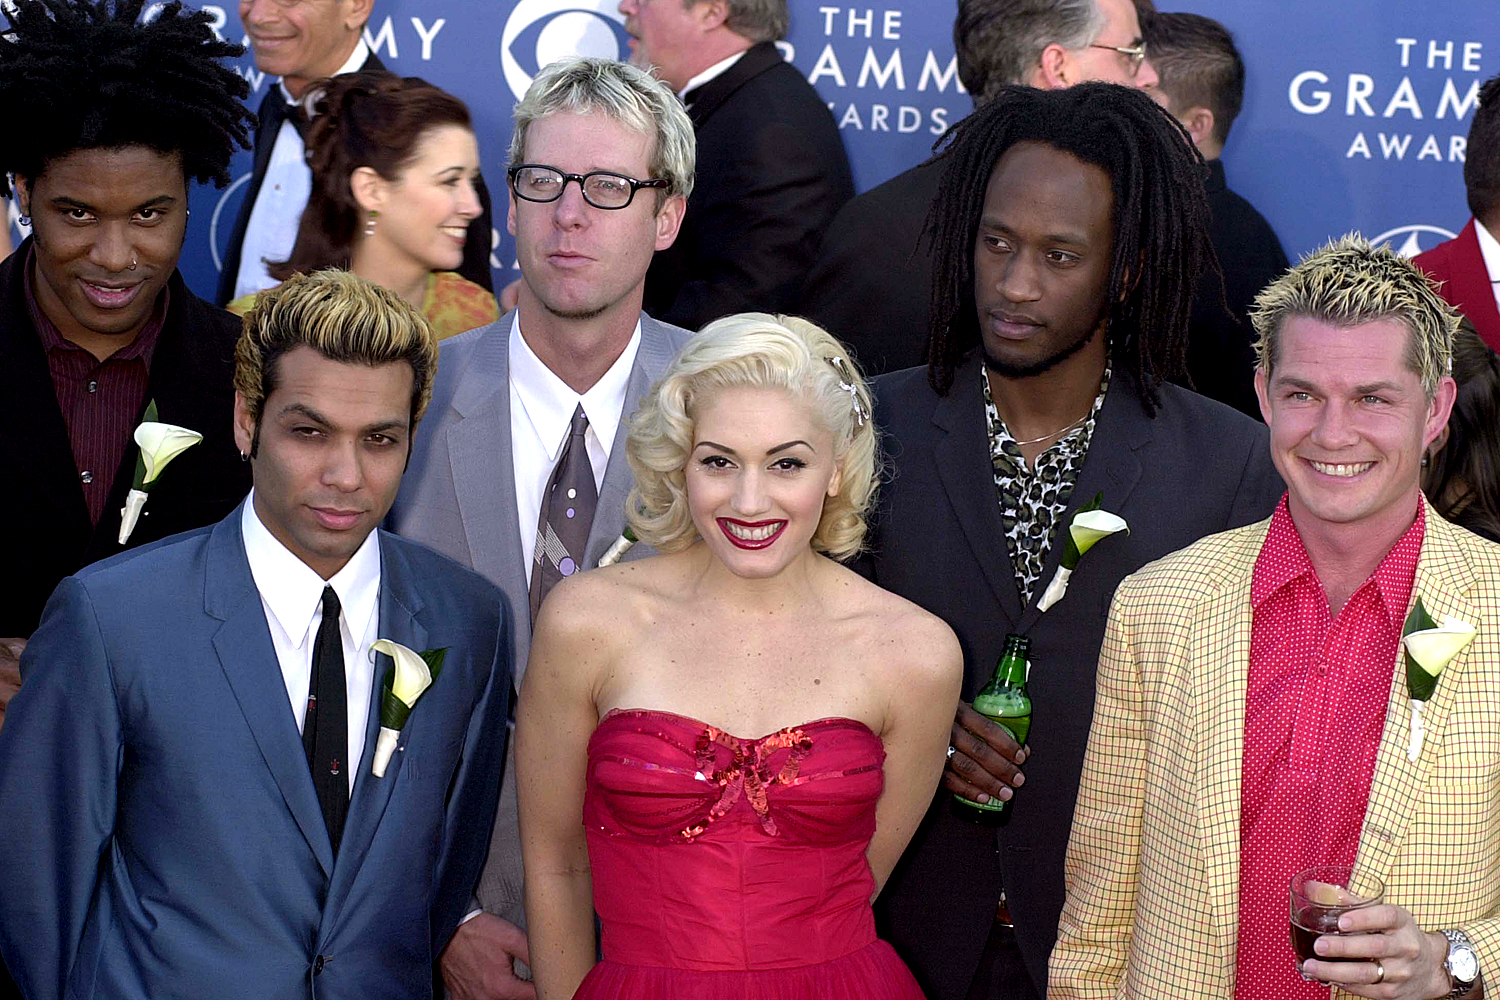 Gwen Stefani and her band No Doubt arrive at the 43rd Annual Grammy Awards